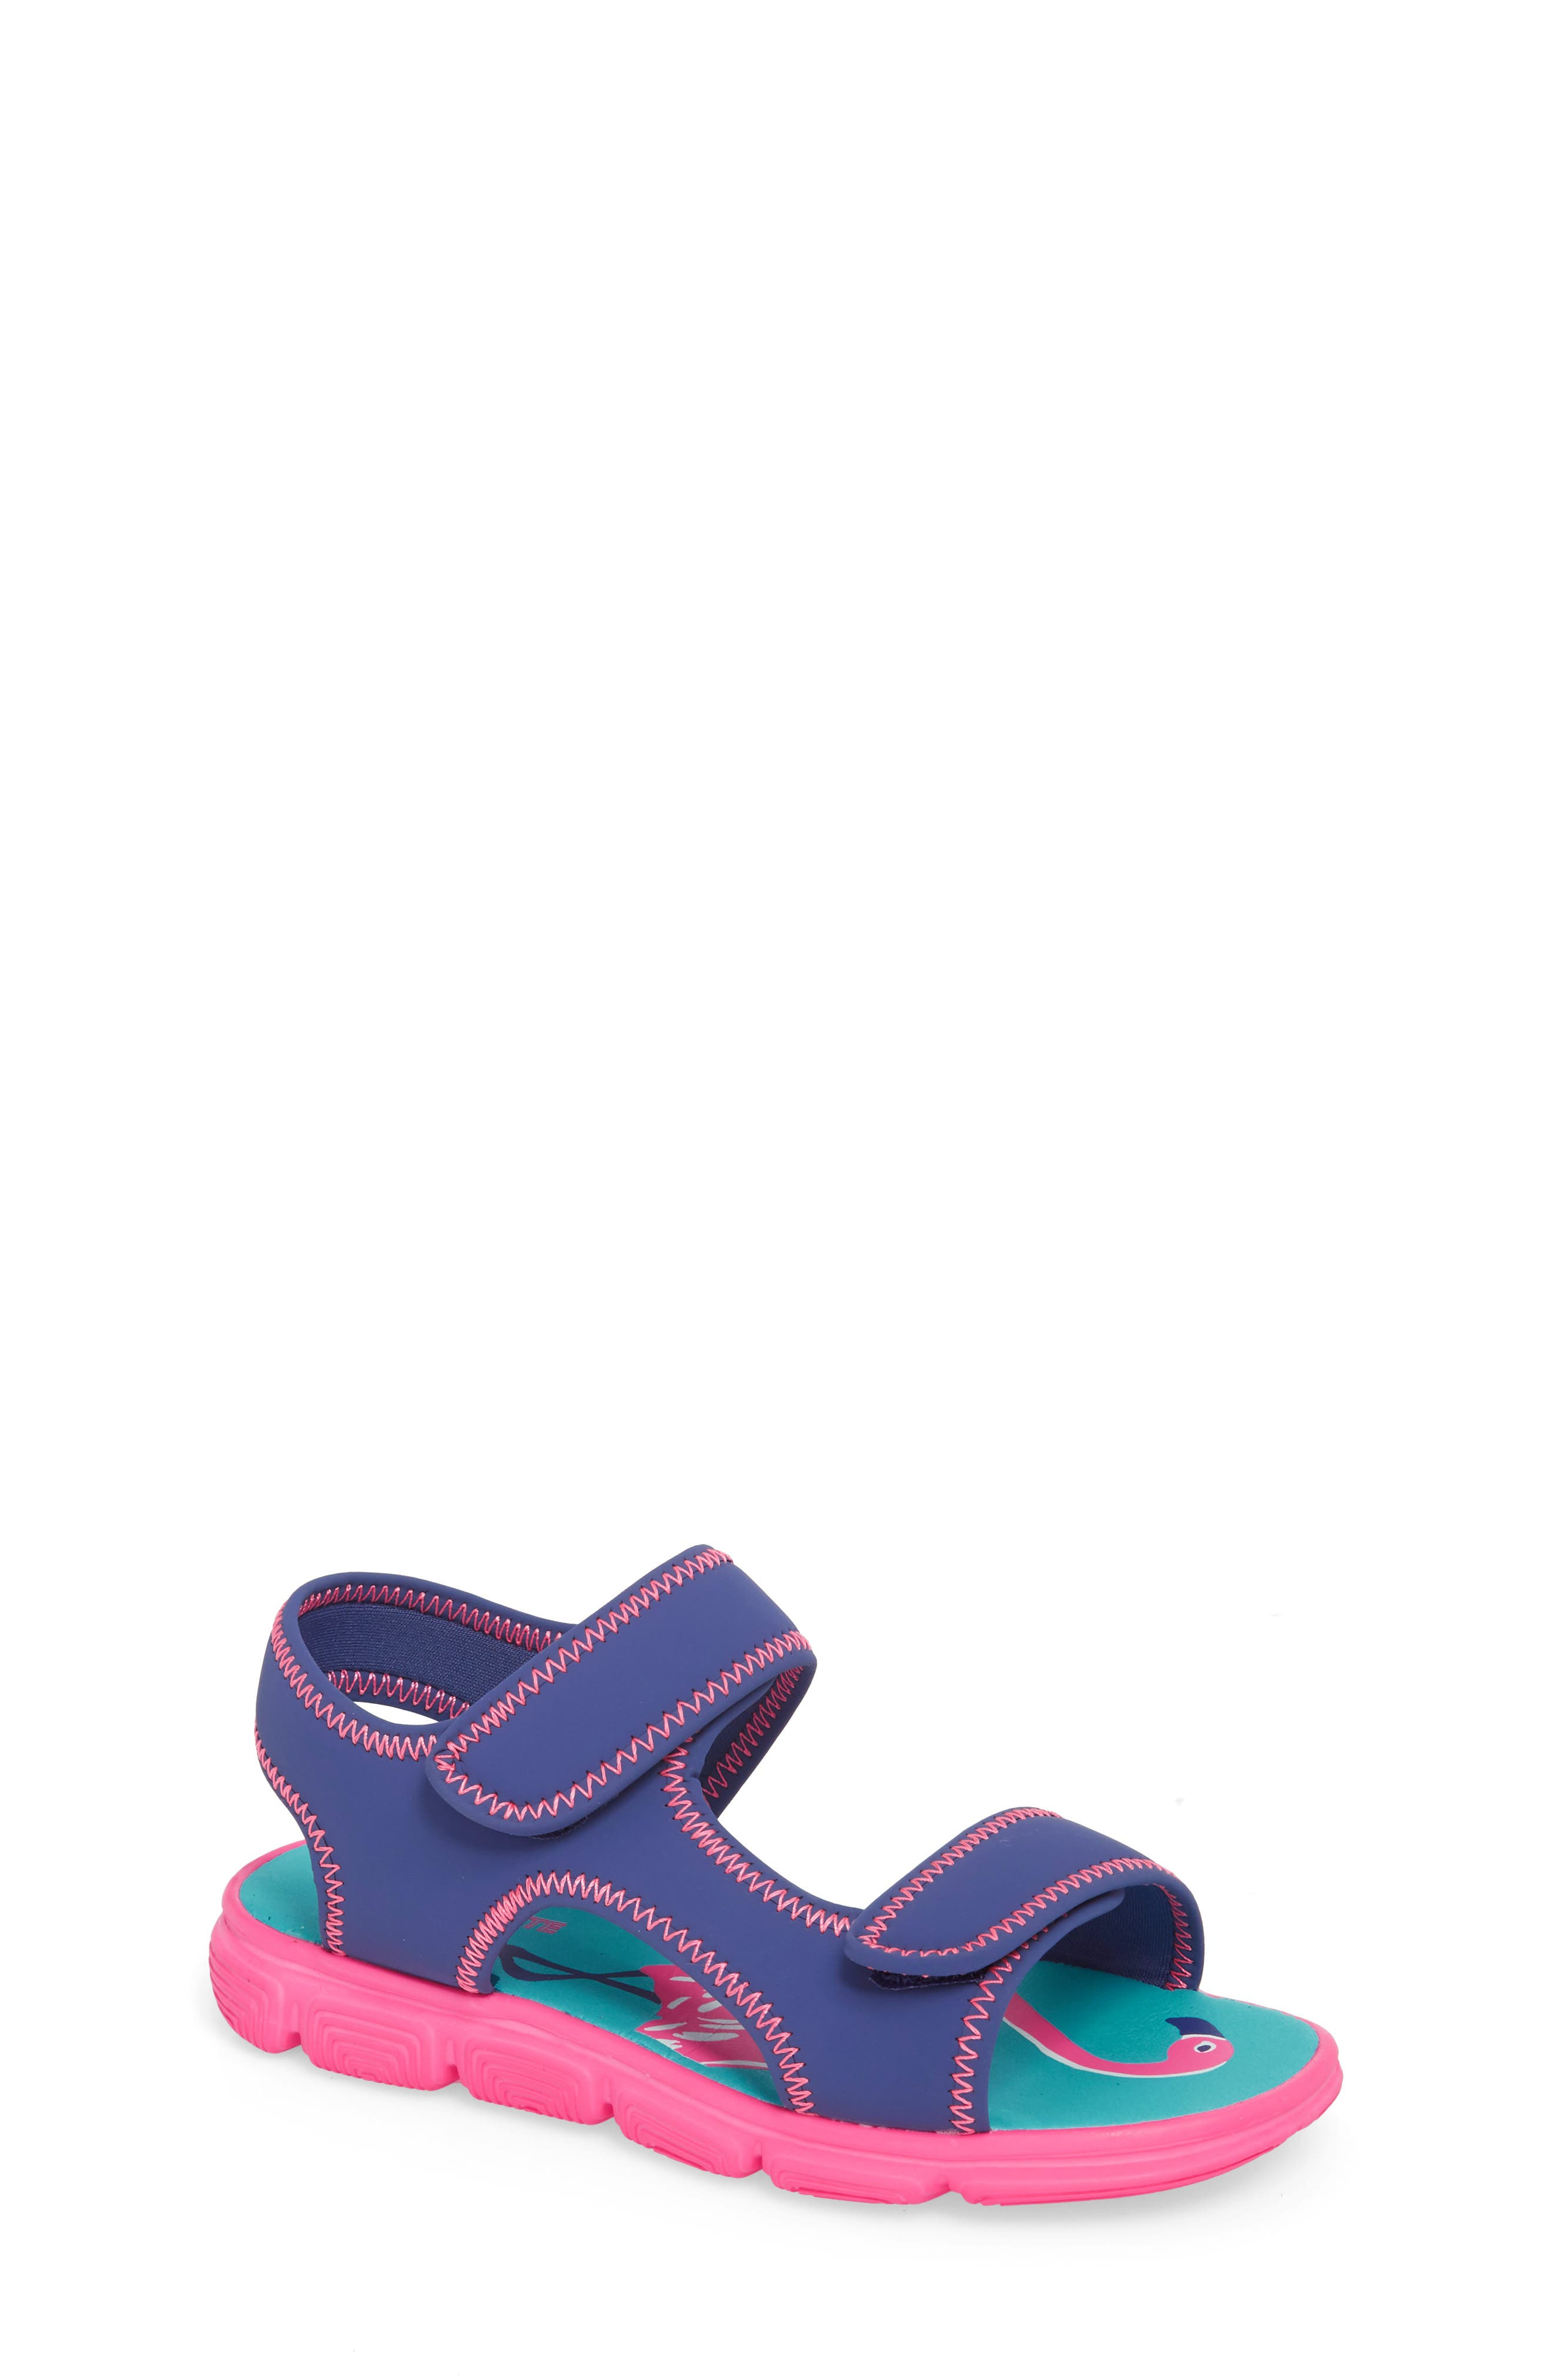 Alternate Image 1 Selected - Tucker + Tate Everly Water Sandal (Toddler, Little Kid & Big Kid)